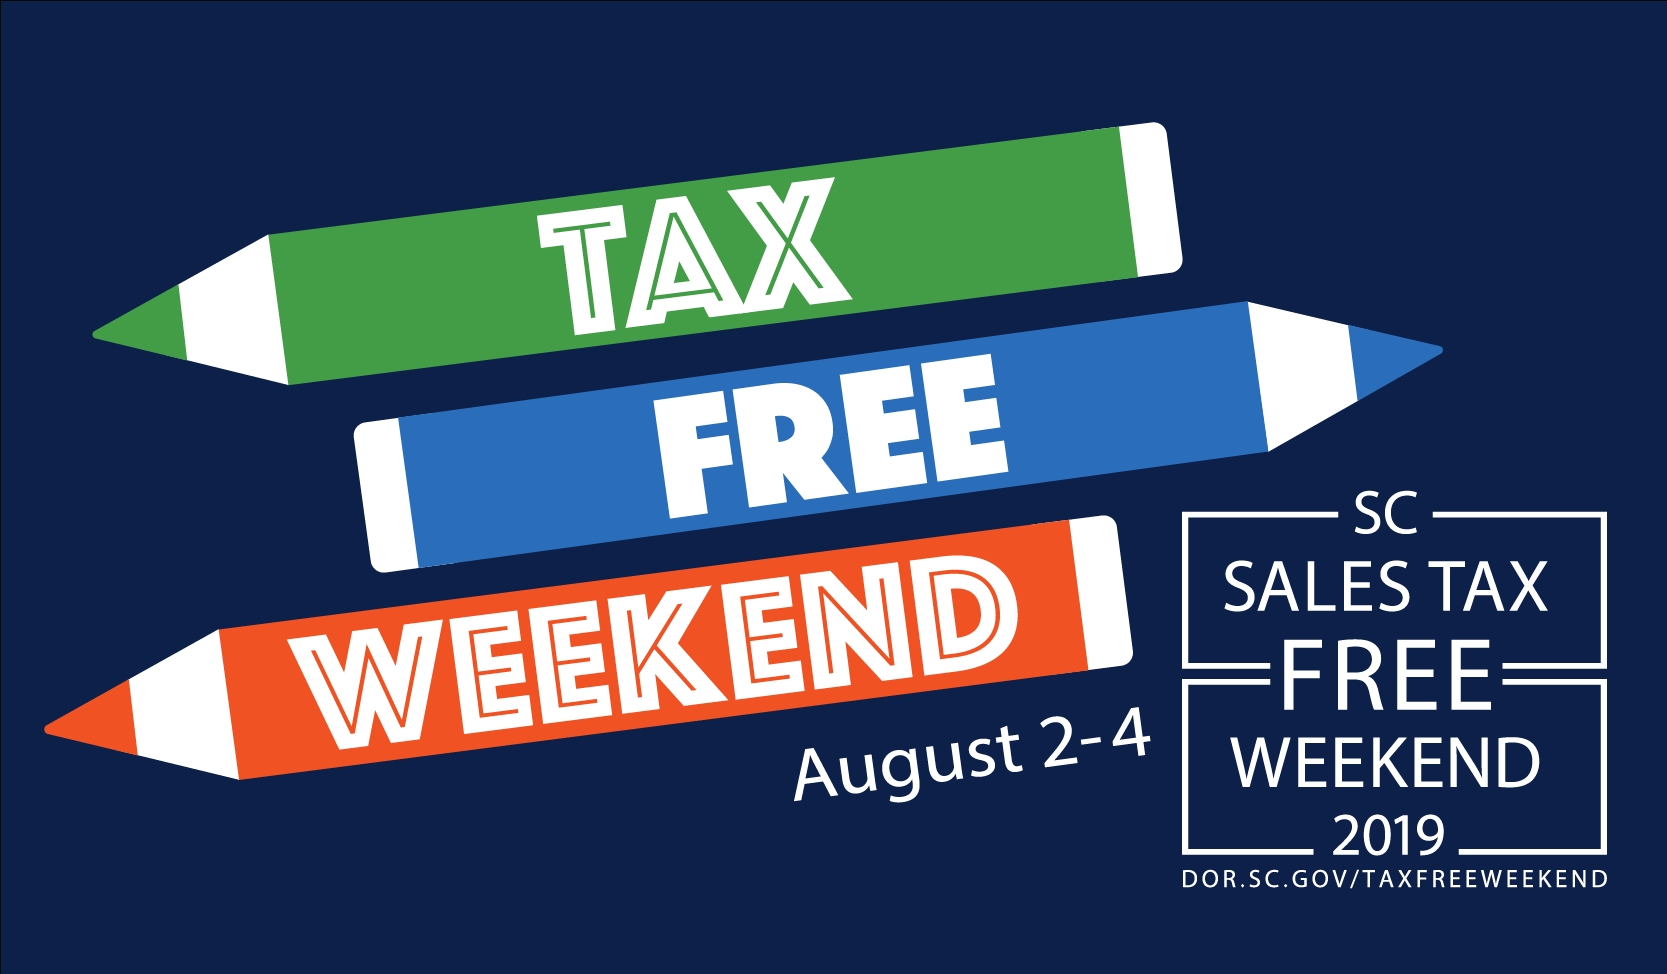 Sales Tax Free Weekend  What Is The Date Of The Tax Free Weekend For Louisiana In 2020